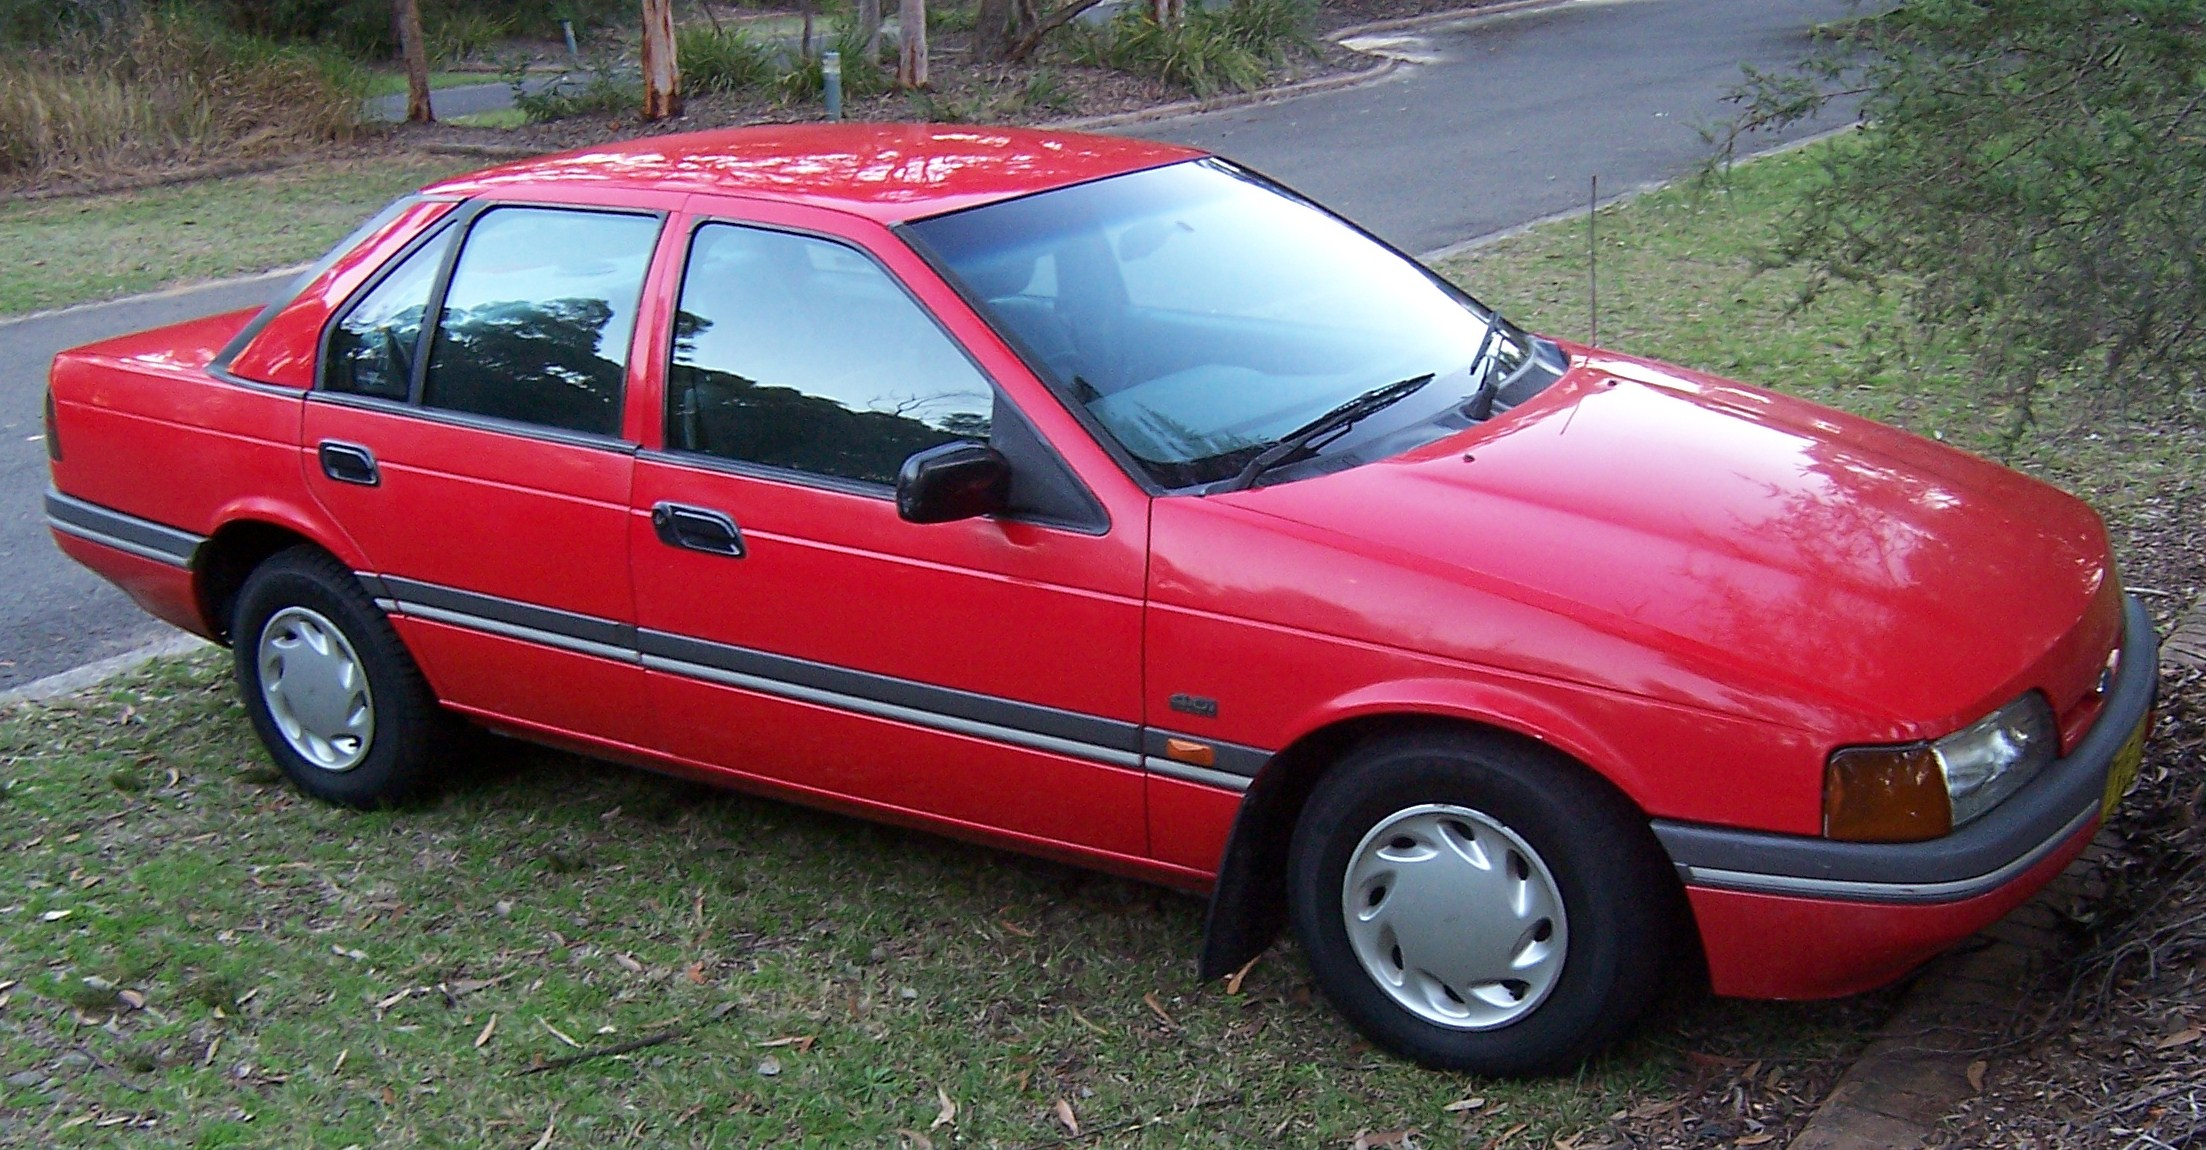 Sleeper Cars likewise Ford Xc Fairmont Gxl 152040961883 together with XYSEDC furthermore Cid 999500388 in addition Cid 999500234. on ford fairmont australia